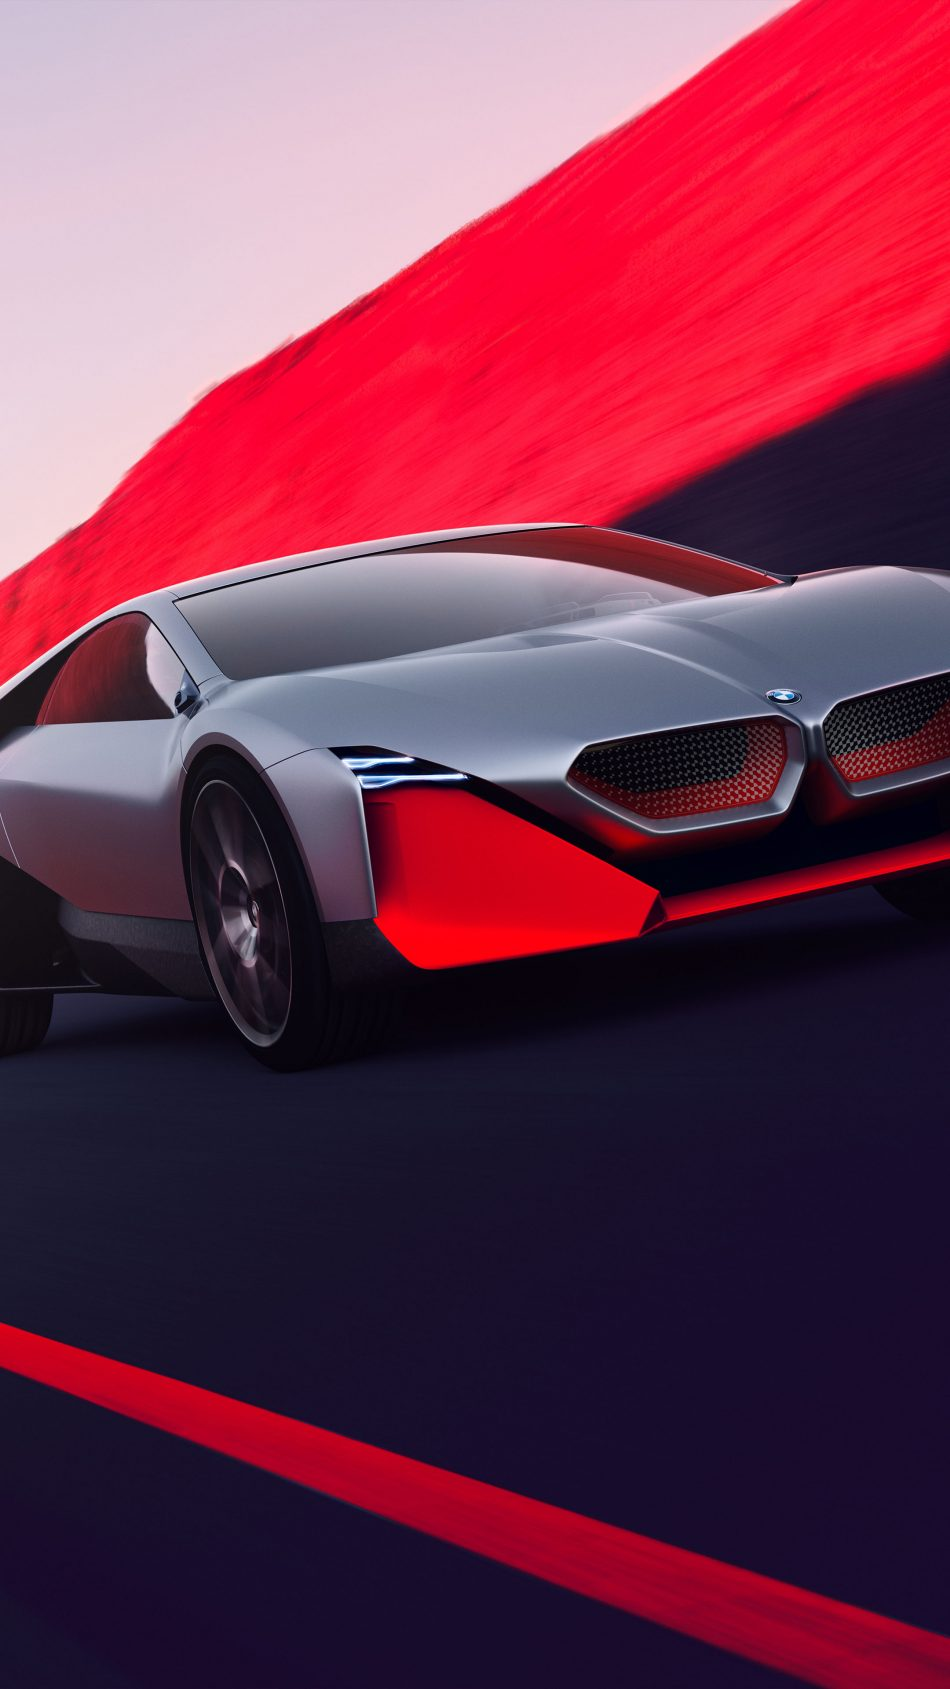 Colorful outdoor backgrounds can help you to feel relaxed or energized for the rest of the day. Bmw Vision M Next Concept Car 4k Ultra Hd Mobile Wallpaper Bmw Vision M Next 950x1689 Wallpaper Teahub Io